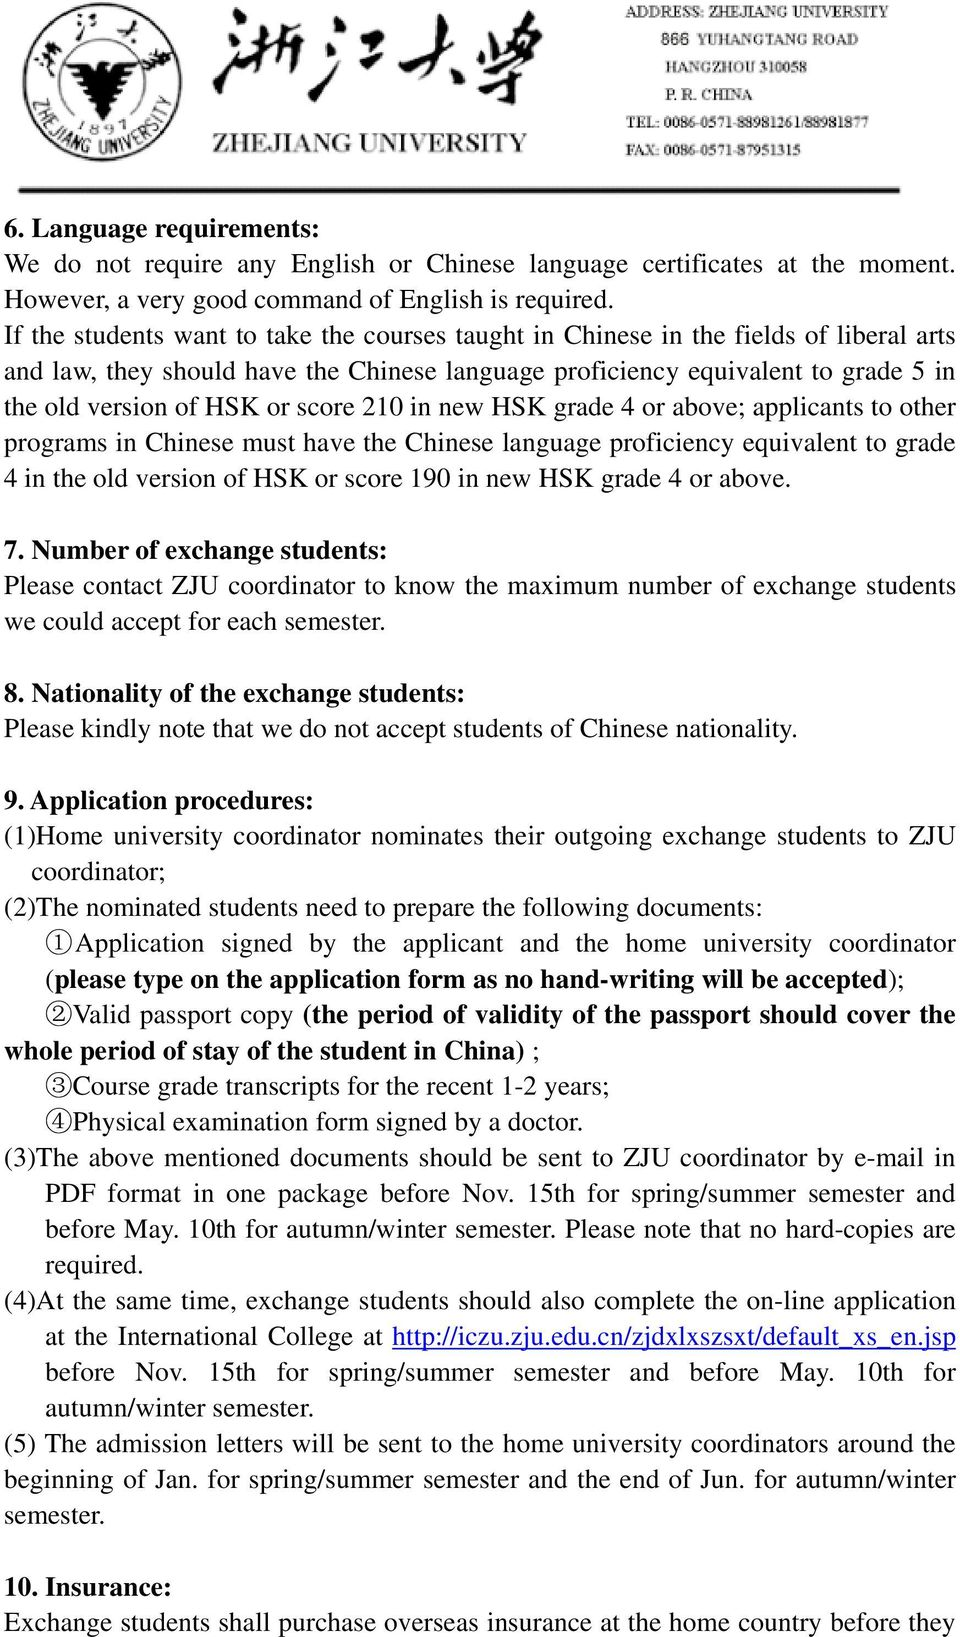 score 210 in new HSK grade 4 or above; applicants to other programs in Chinese must have the Chinese language proficiency equivalent to grade 4 in the old version of HSK or score 190 in new HSK grade